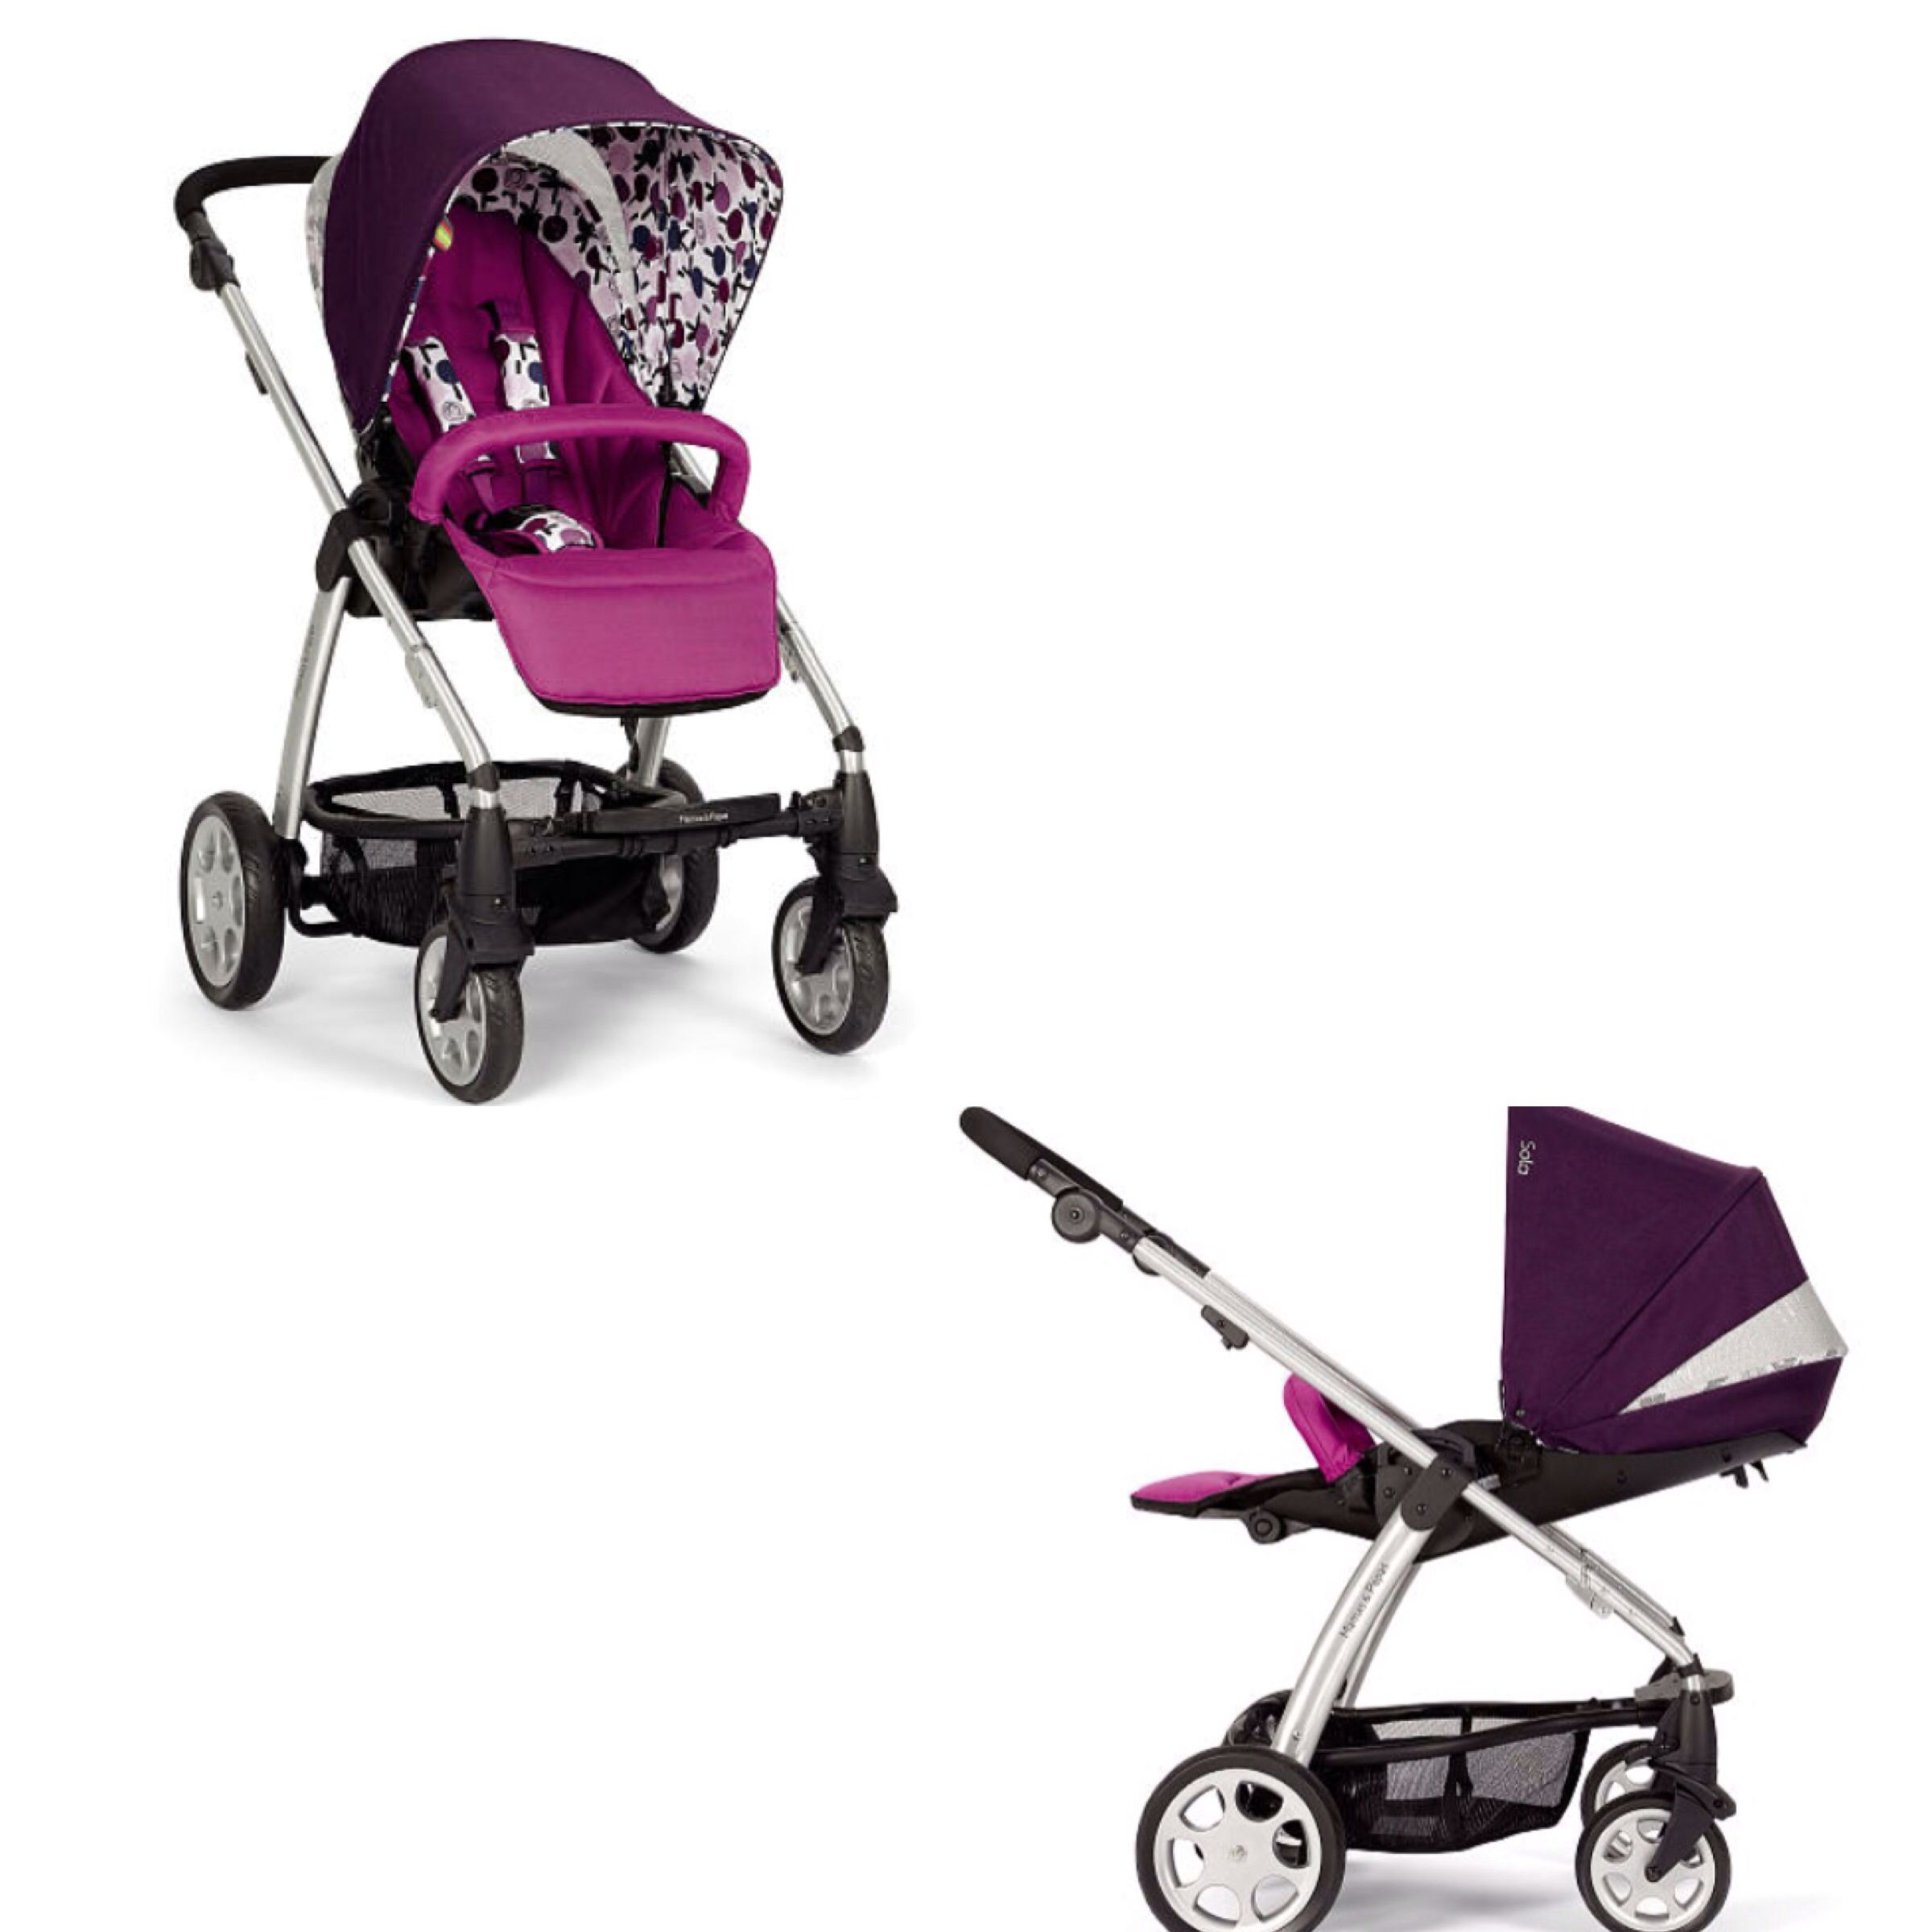 Mamas & Papas Sola Plum Petal stroller with Reversible reclining seat